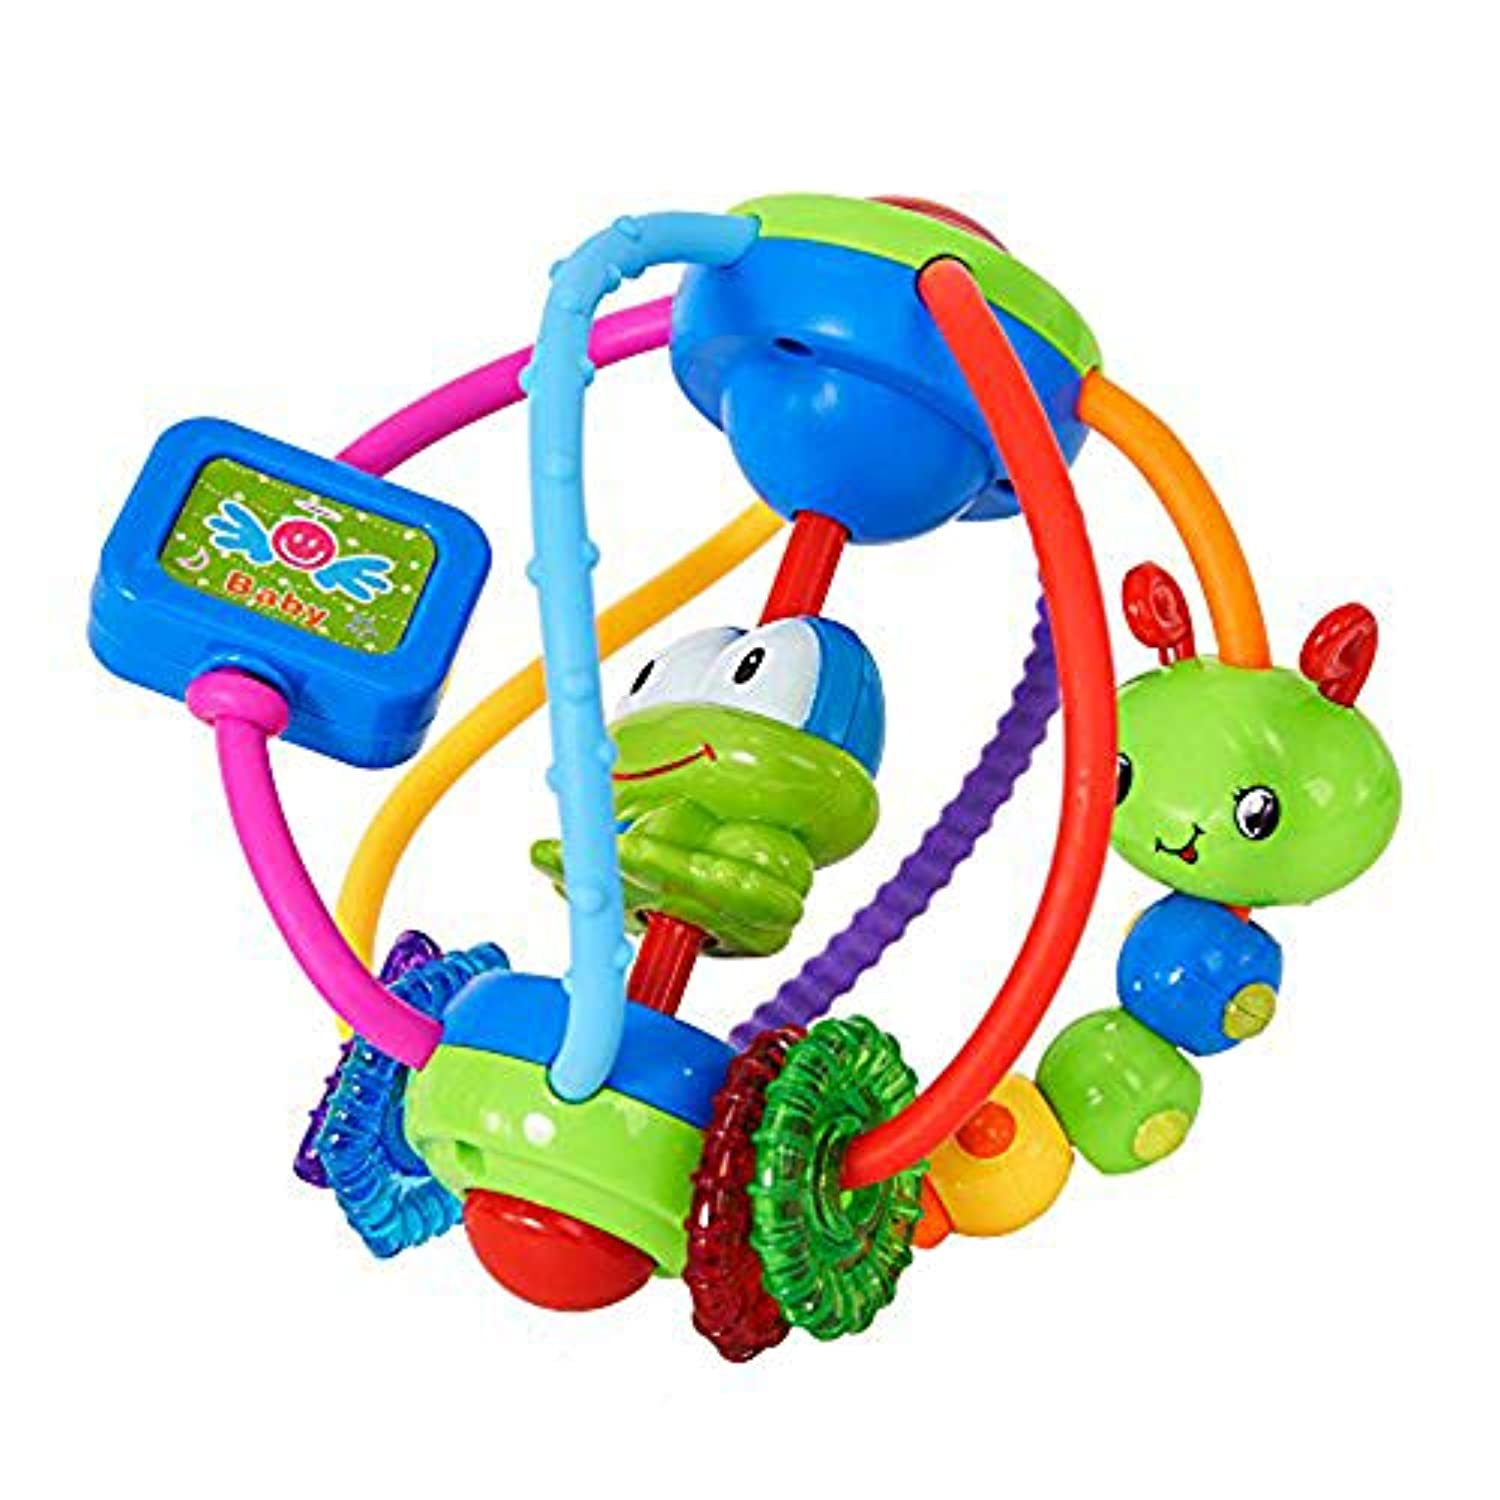 COLORTREE Baby Sensory Discover Shake & Spin Activity Ball Learning Toy